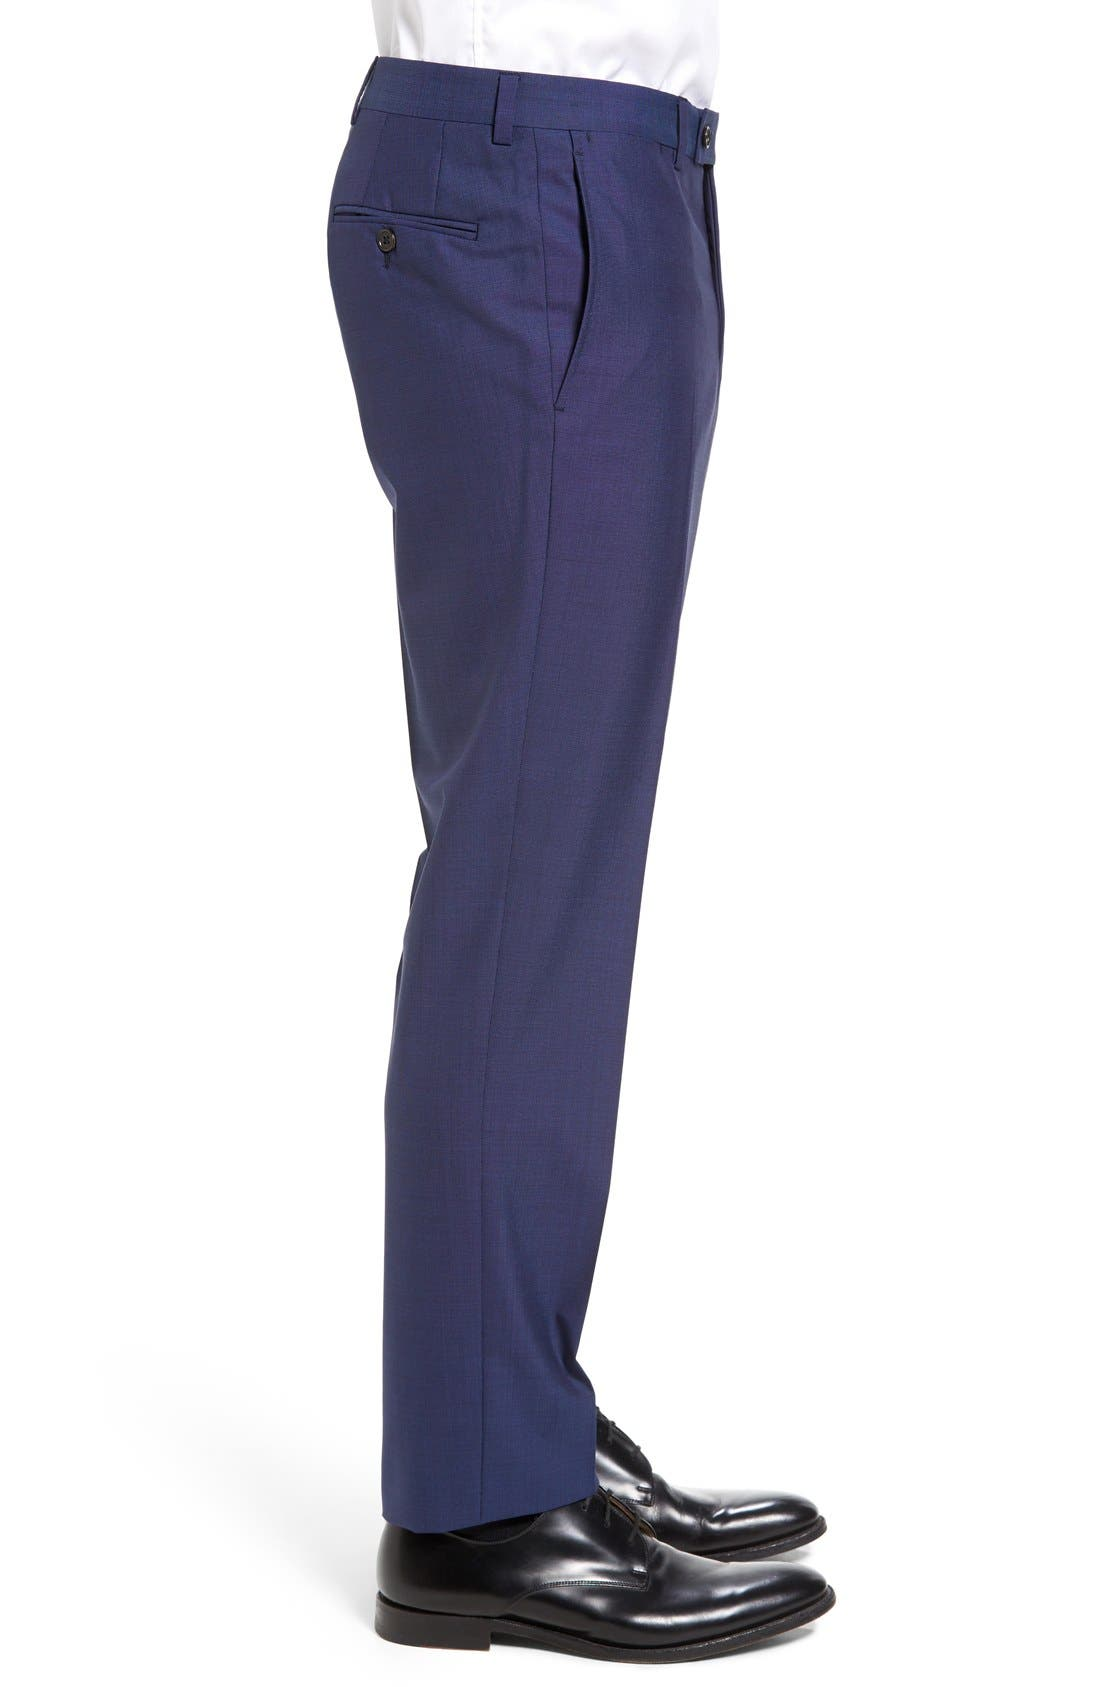 Jefferson Flat Front Solid Wool Trousers,                             Alternate thumbnail 9, color,                             BLUE